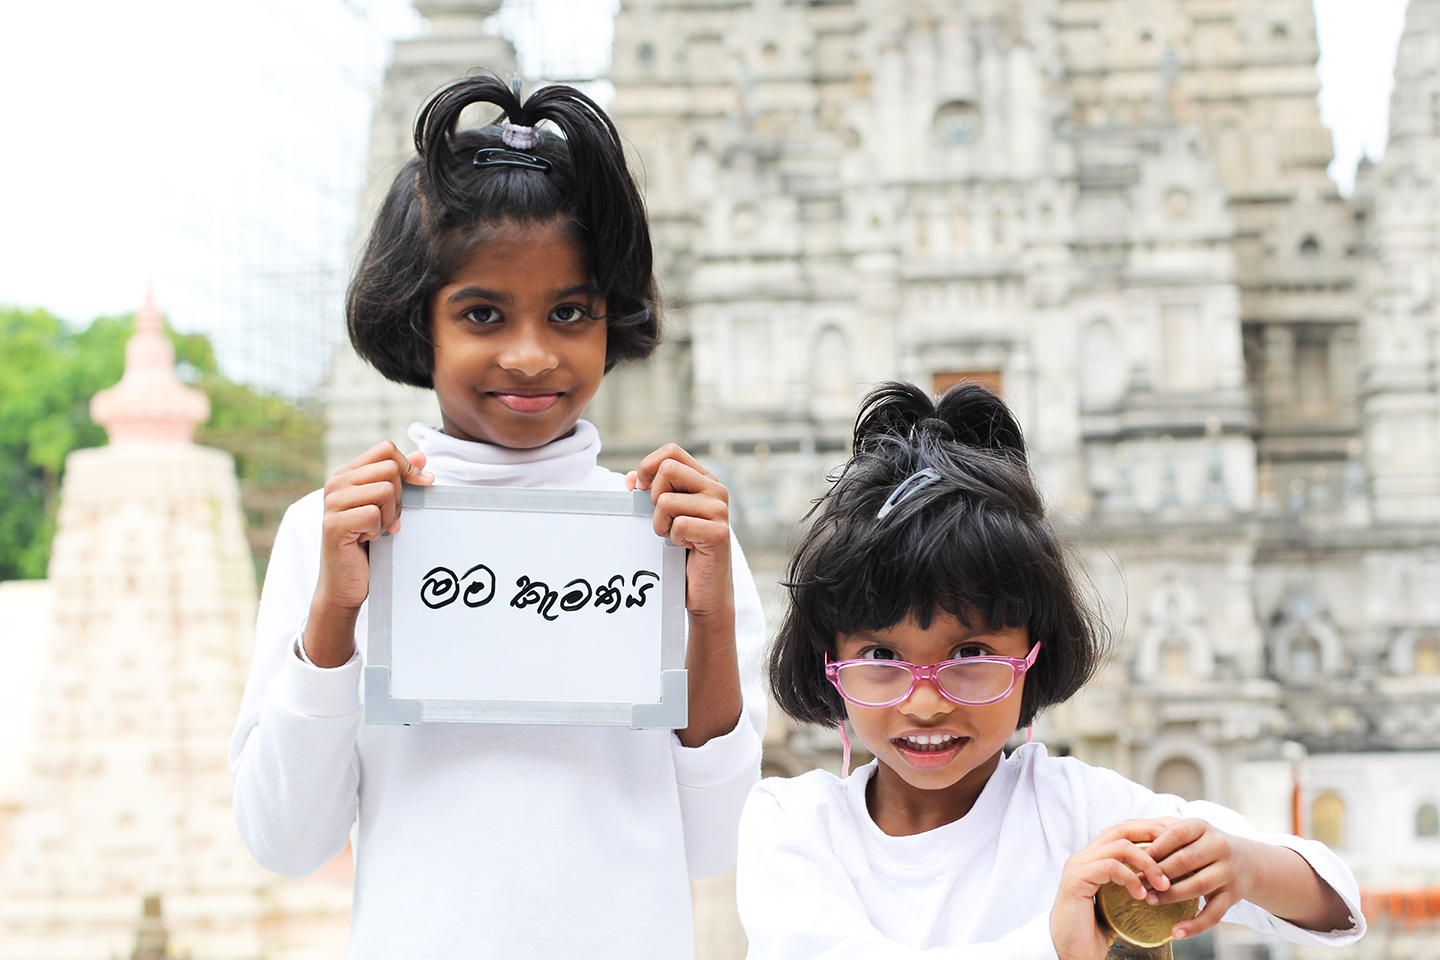 Miyungi, 8, and Situli, 4, visit Mahabodhi Temple in Bodhygaya, Bihar. Originally from Anuradhapura, Sri Lanka, they currently live in Delhi, where their father works at the Sri Lankan High Commission. While their father prefers the sweeter taste of Sri Lankan tea to Indian tea, Miyungi and Situli think all chai is delicious.